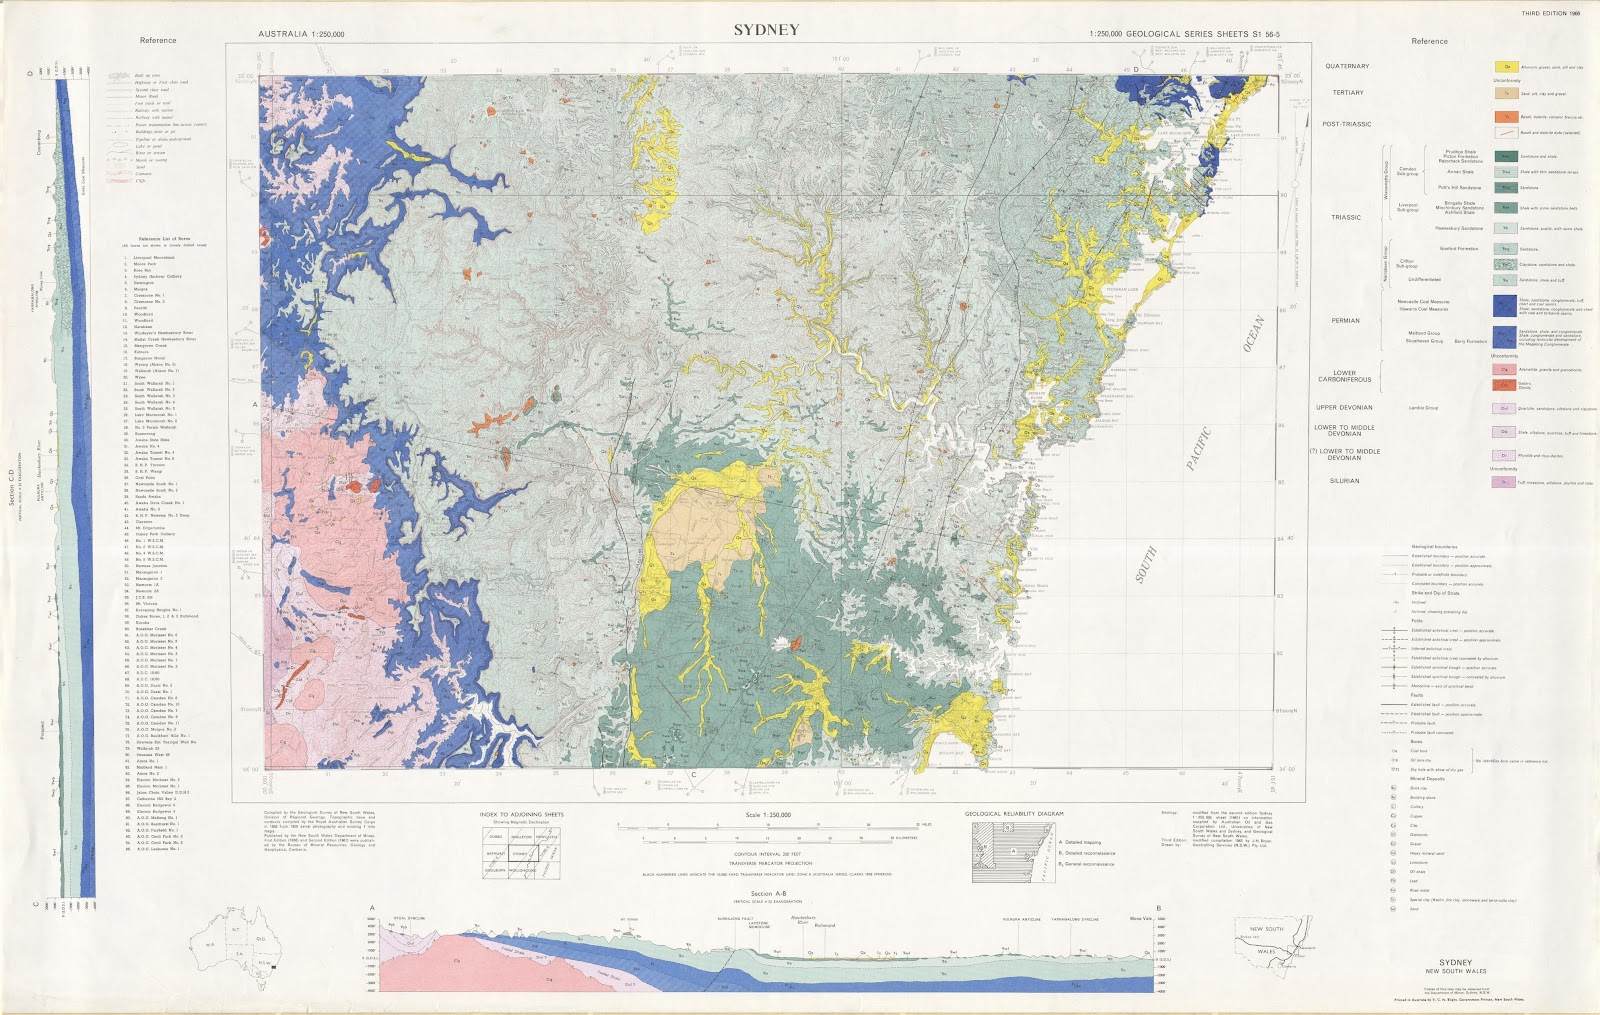 geological map of the sydney basin green and blue are sand clay and siltstone of the sydney basin and the pink represents the old mountain basement